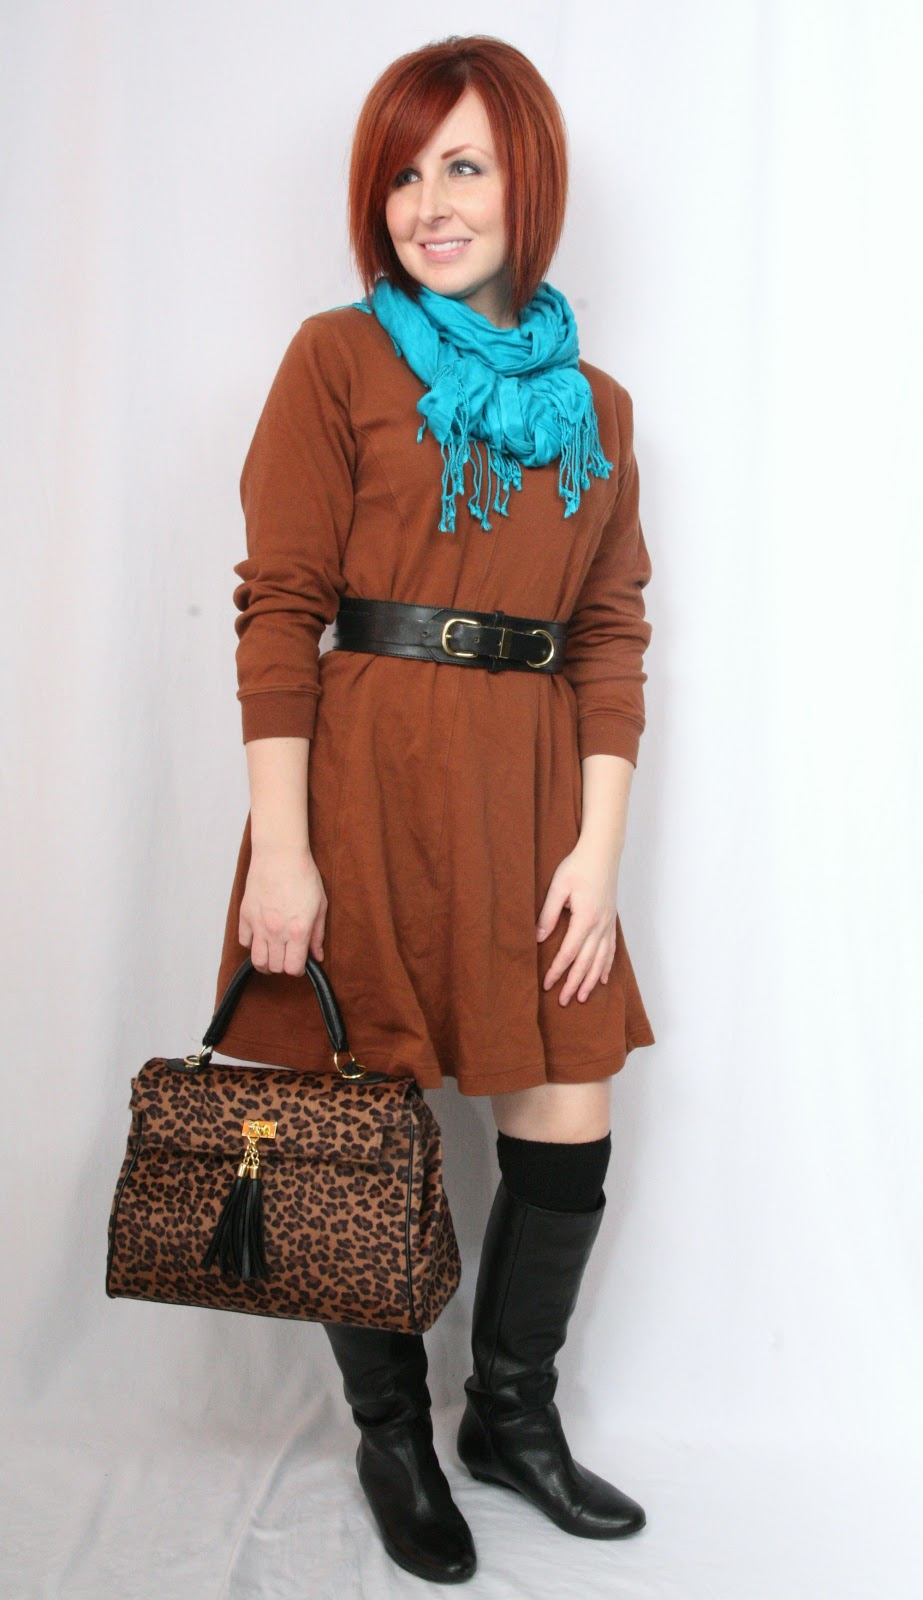 thrift and shout cute outfit of the day gingerbread woman